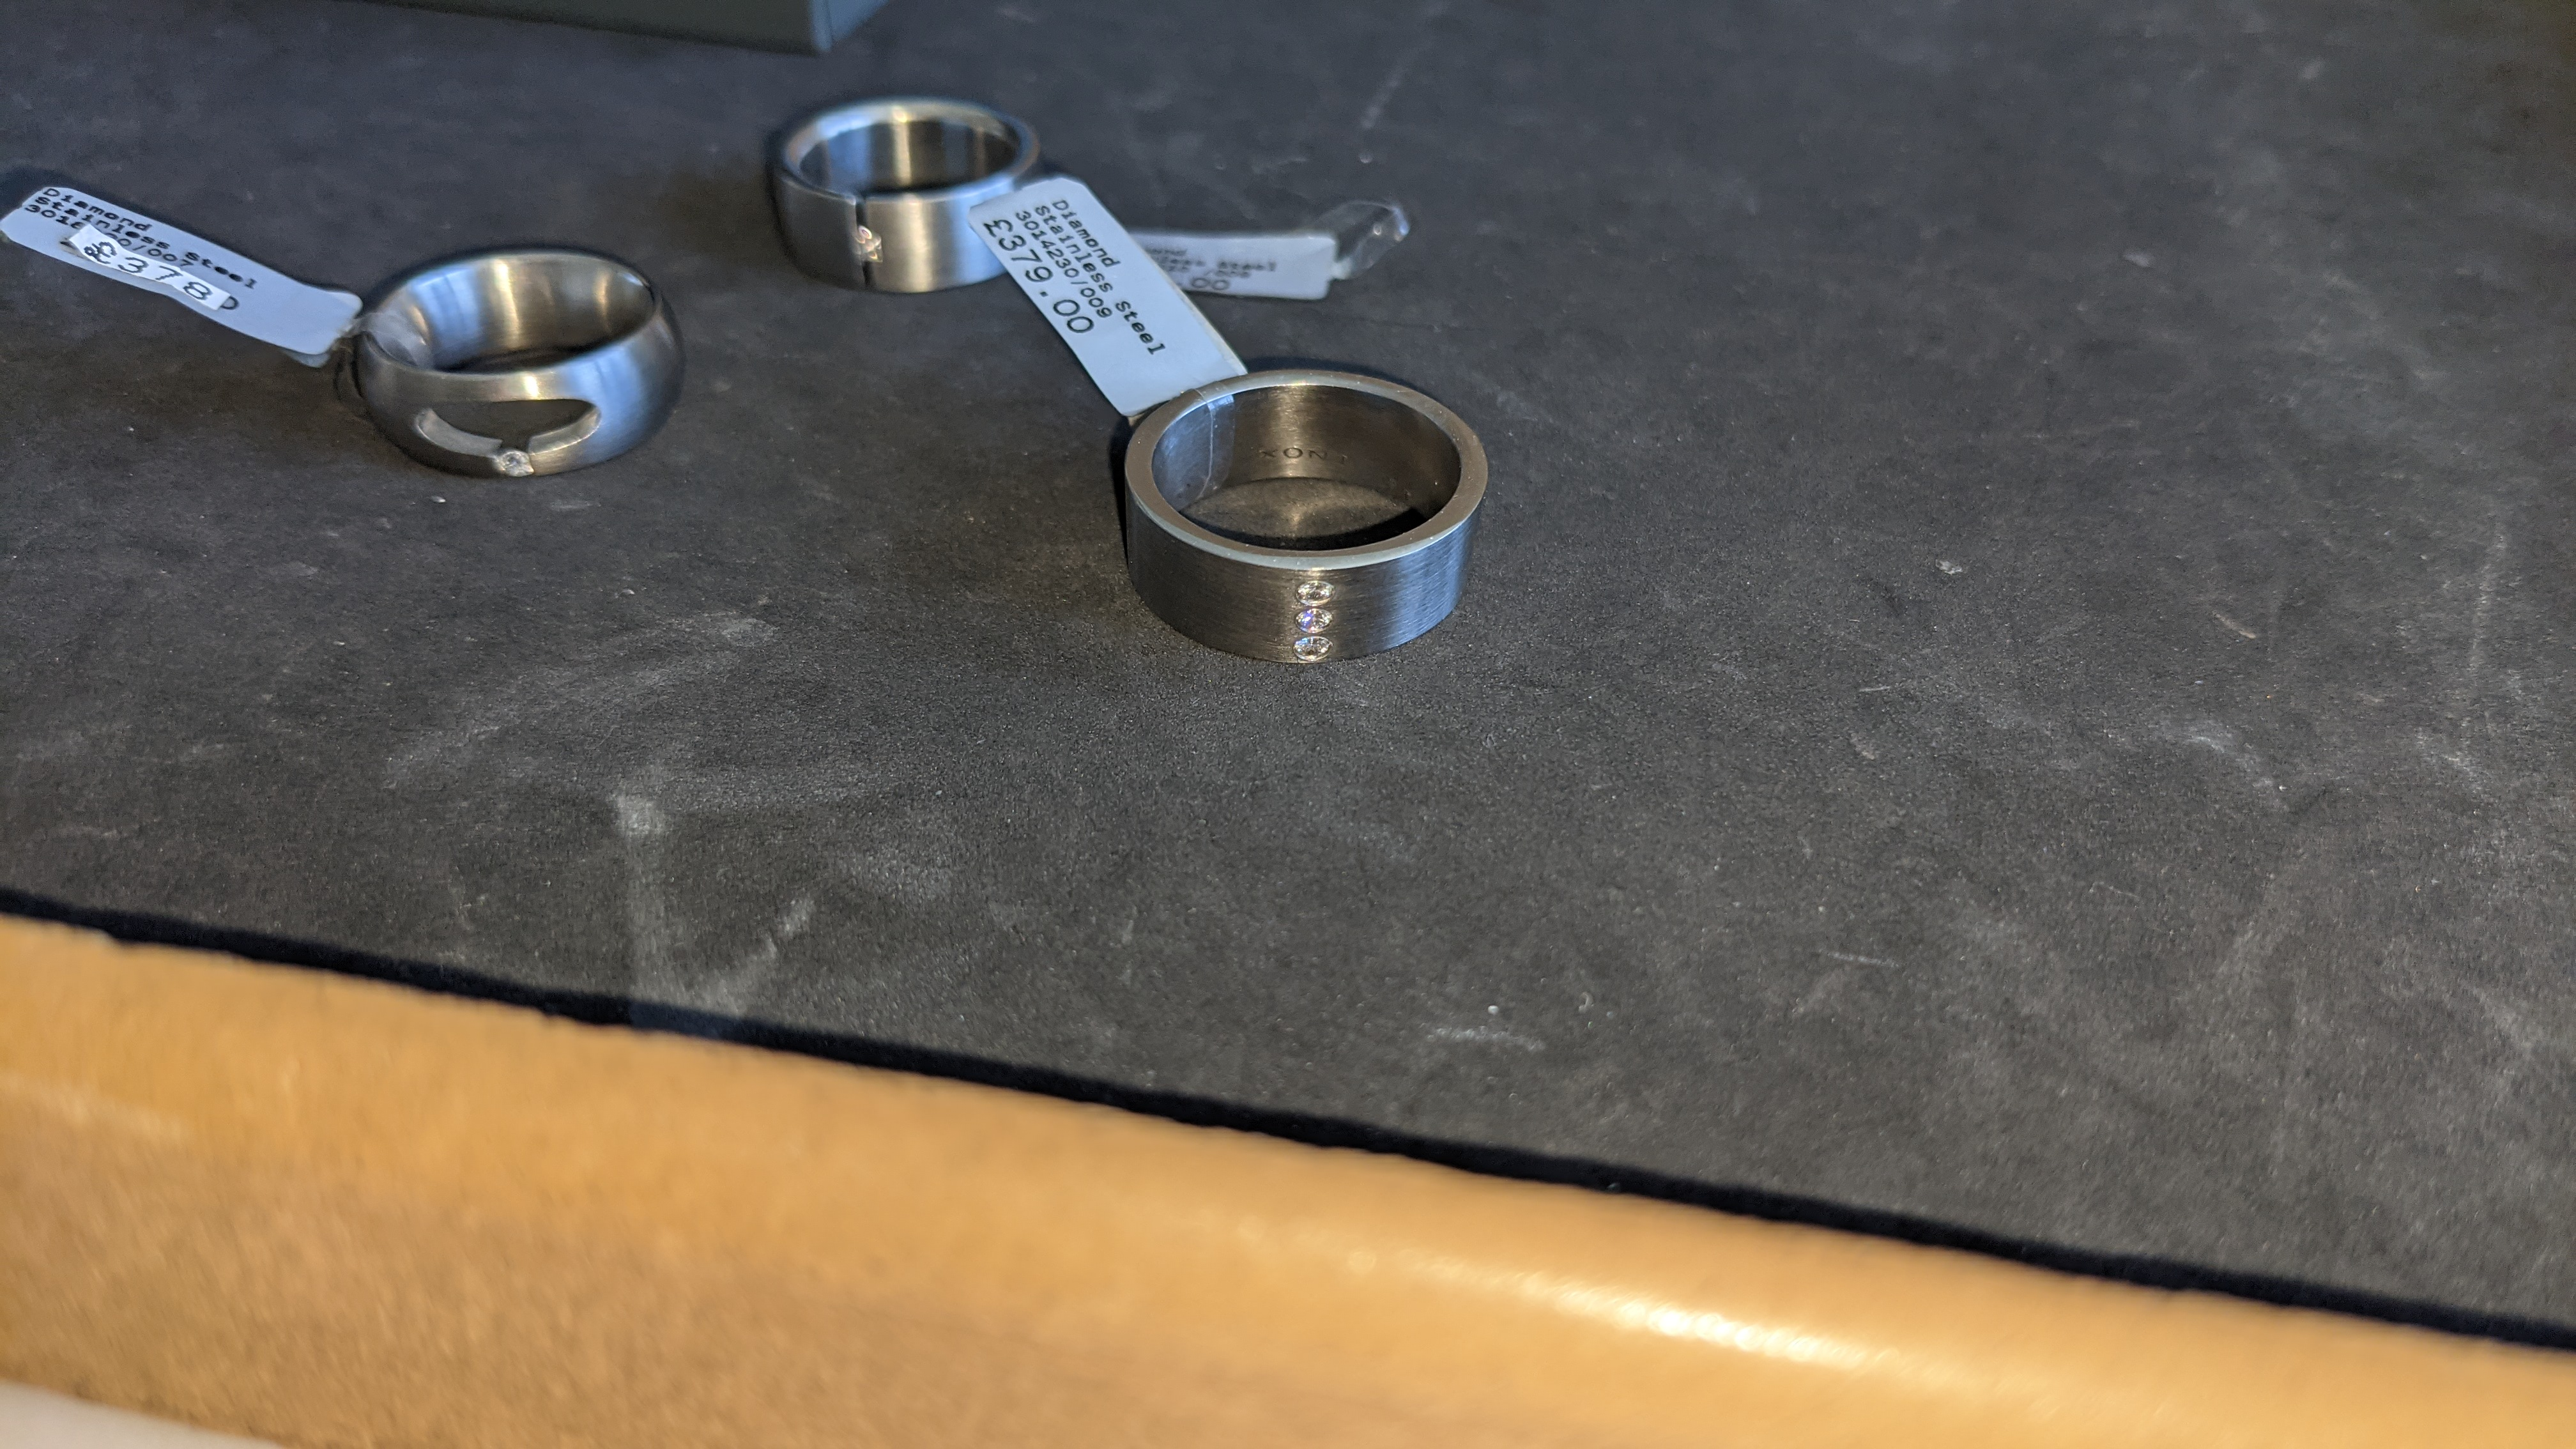 3 off assorted stainless steel & diamond rings with RRPs of £360, £378 & £379. Total RRP £1,117 - Image 12 of 14